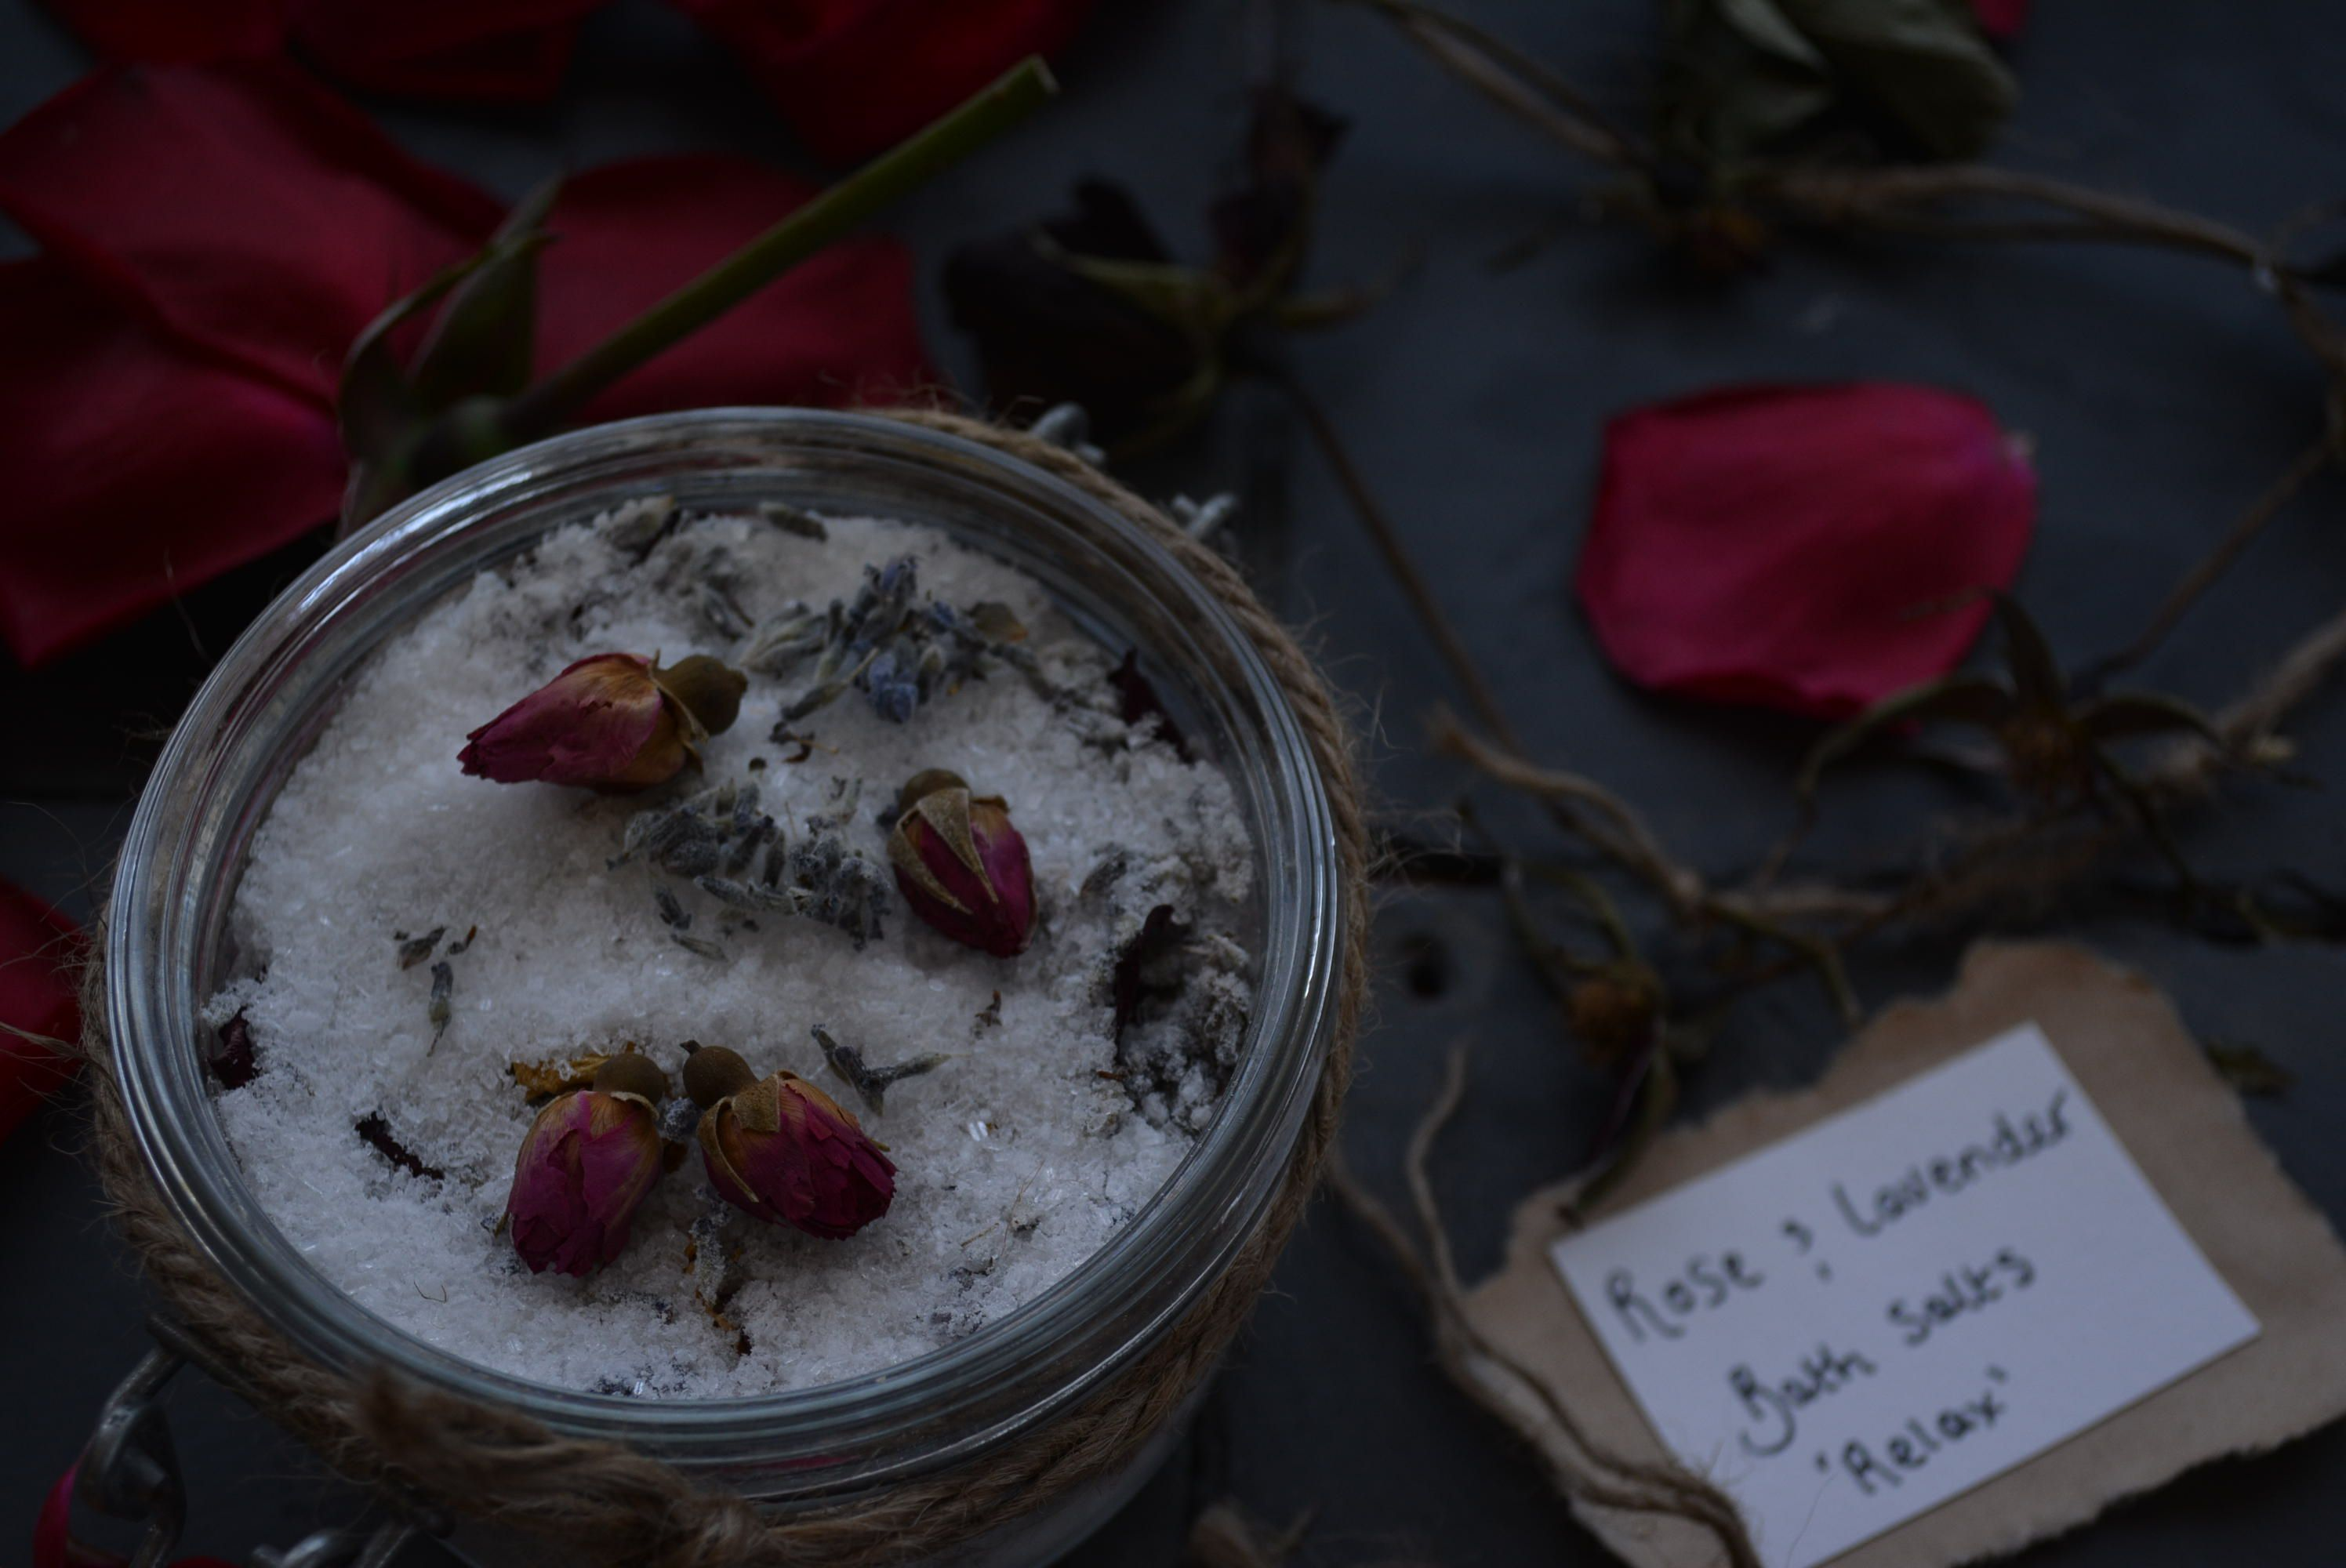 Lavender and rose bath salts to soothe and relax. DIY at home gifts www.countrykitchennz.com